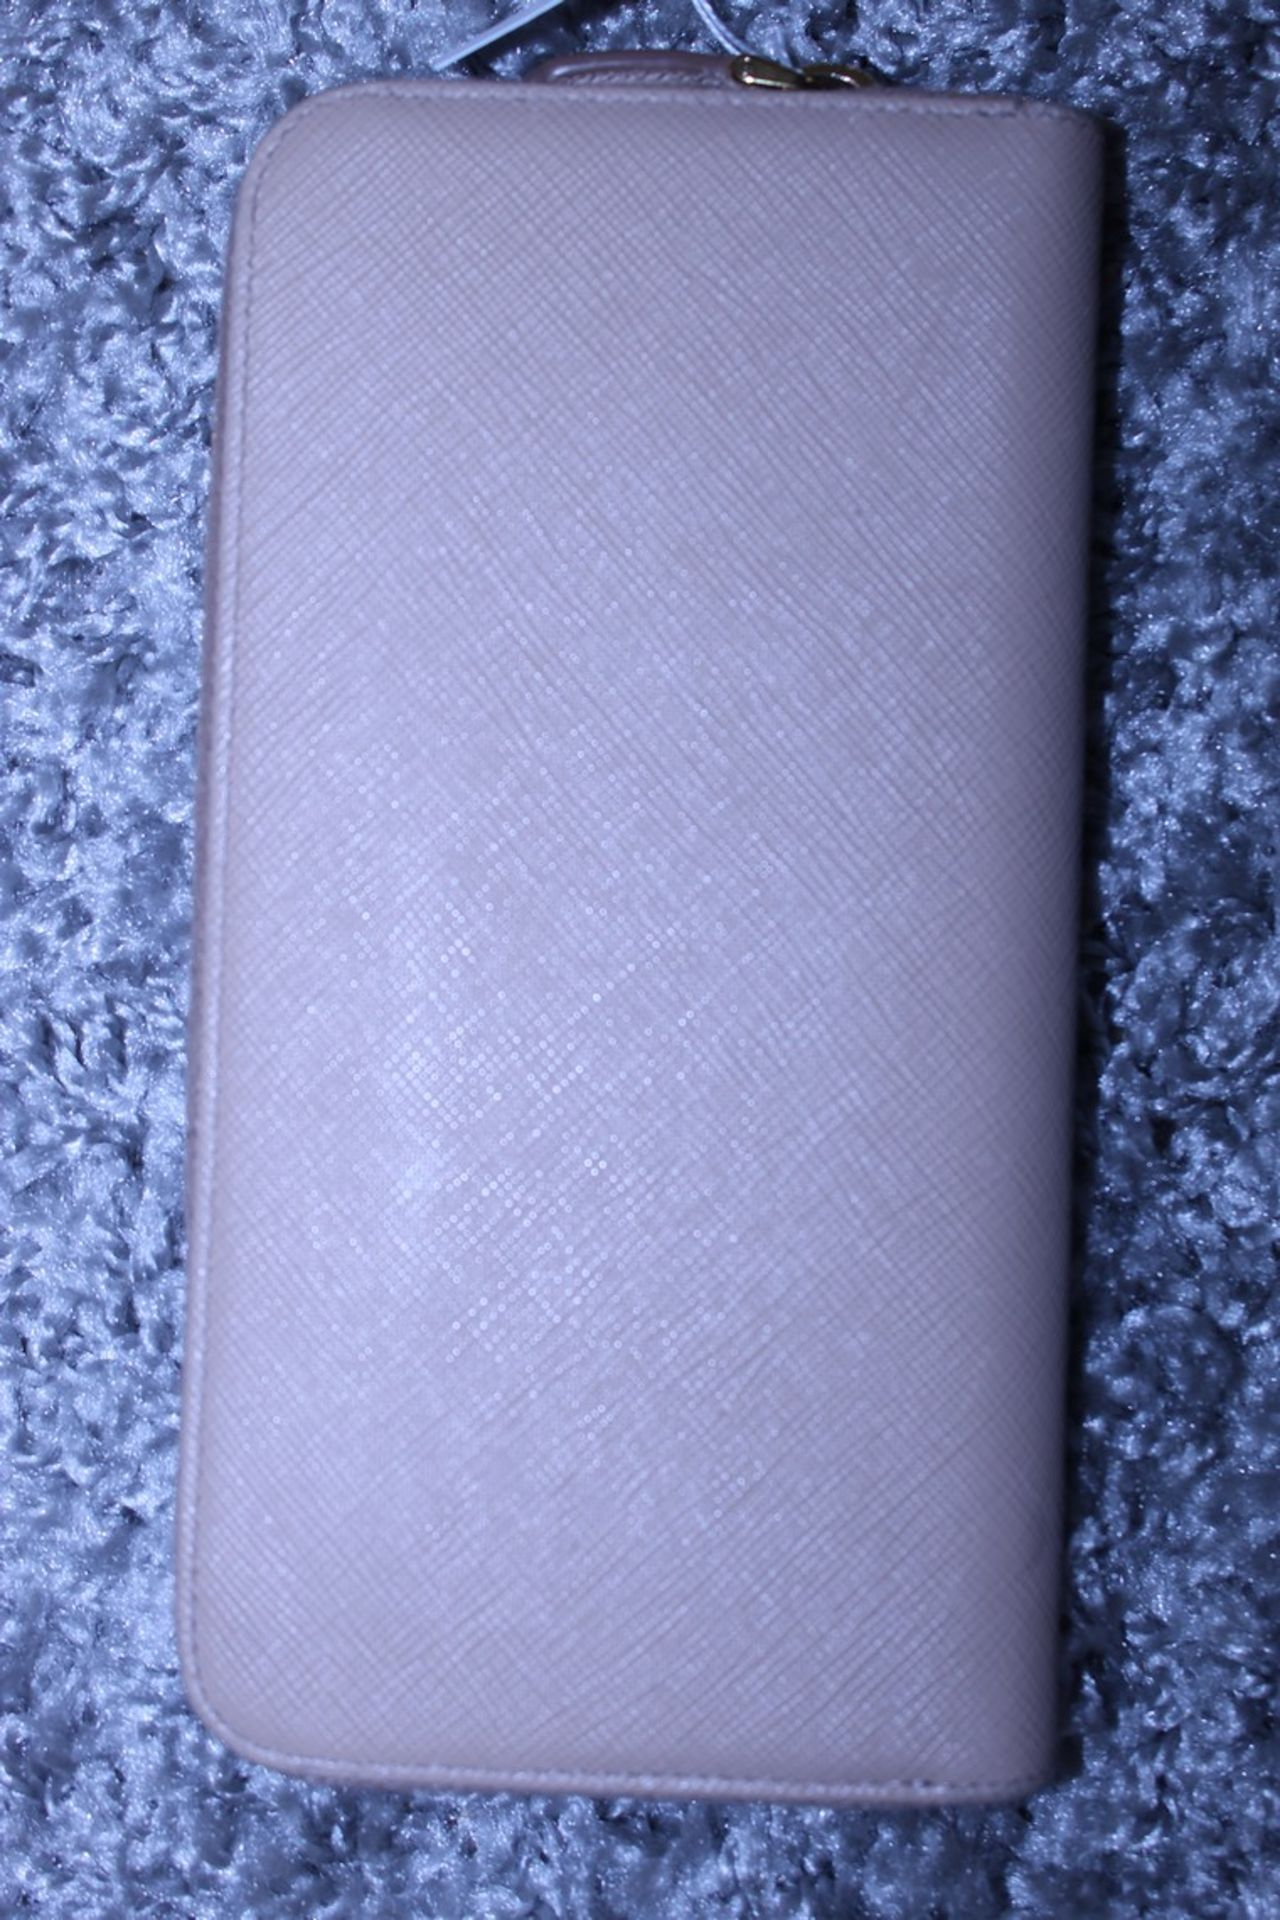 RRP £590 Prada Continental Wallet, Beige Saffiano Leather, 20X10Cm (Production Code 107D) - Image 2 of 3